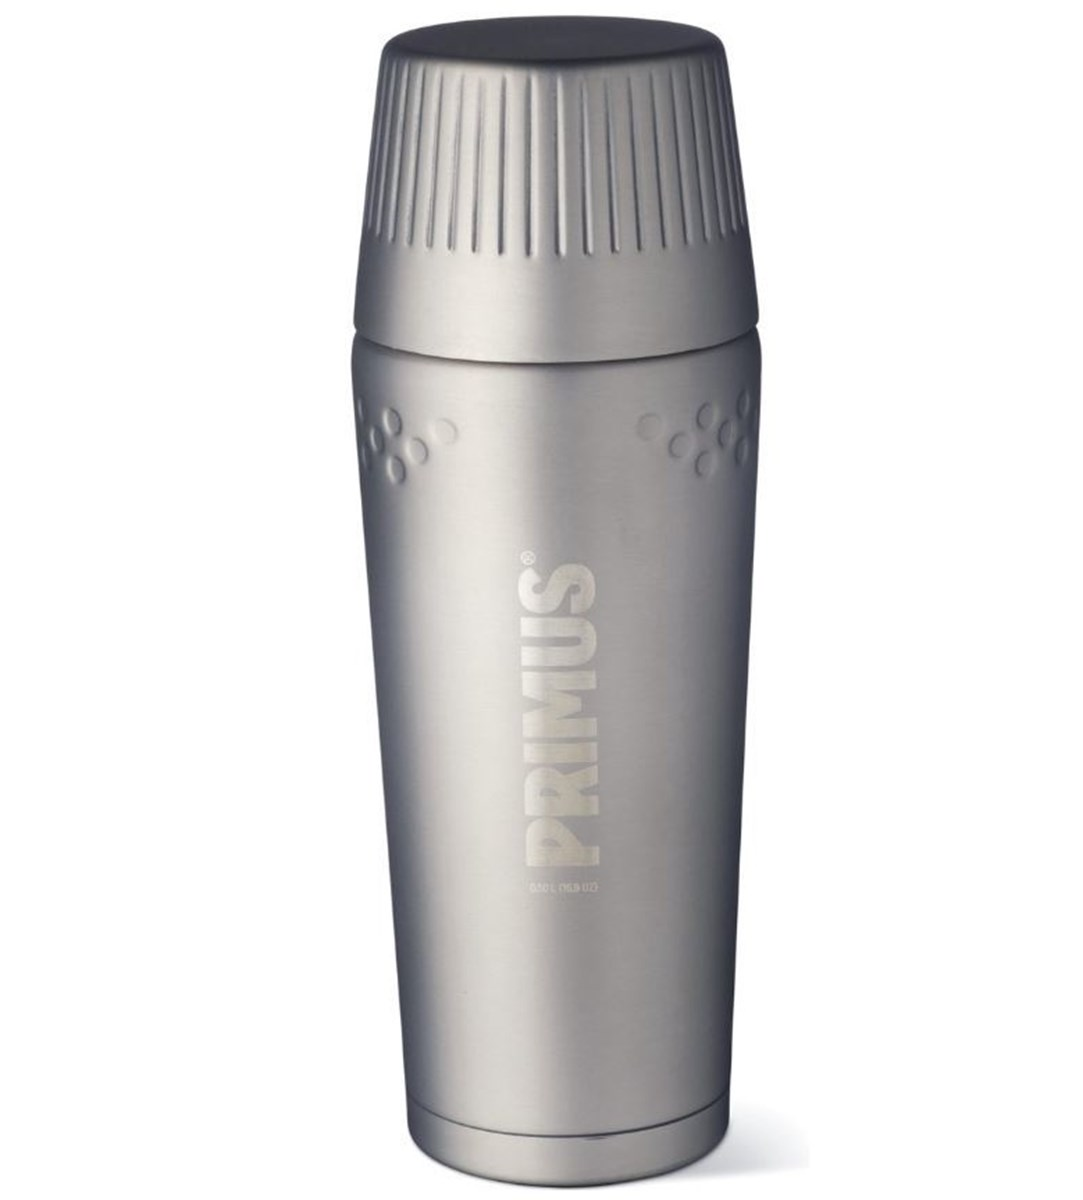 Primus trailbreak vacuum bottle 0.5l s.s